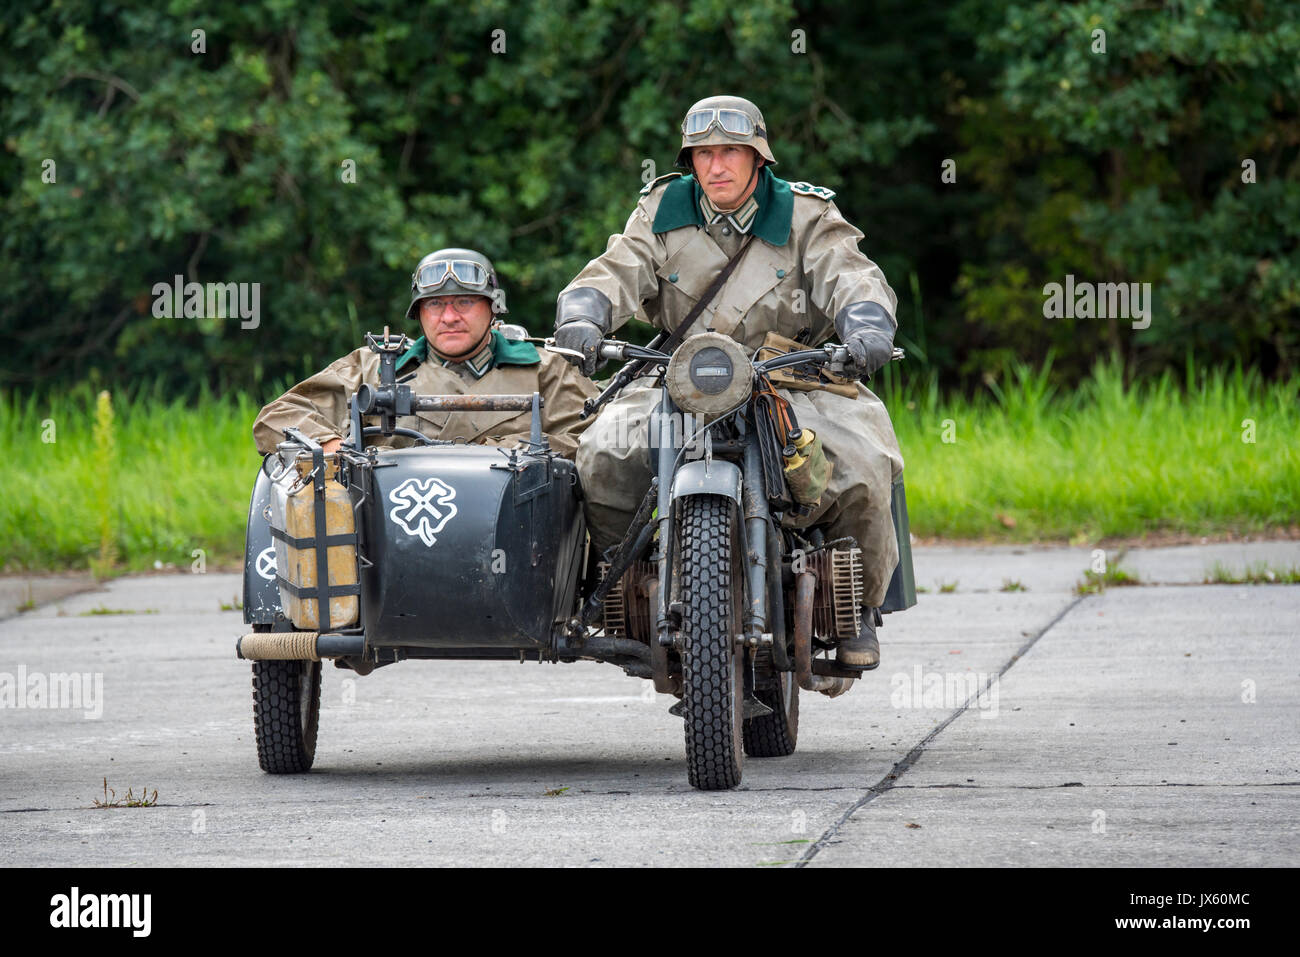 german-ww2-soldiers-riding-on-bmw-military-motorcycle-with-sidecar-JX60MC.jpg